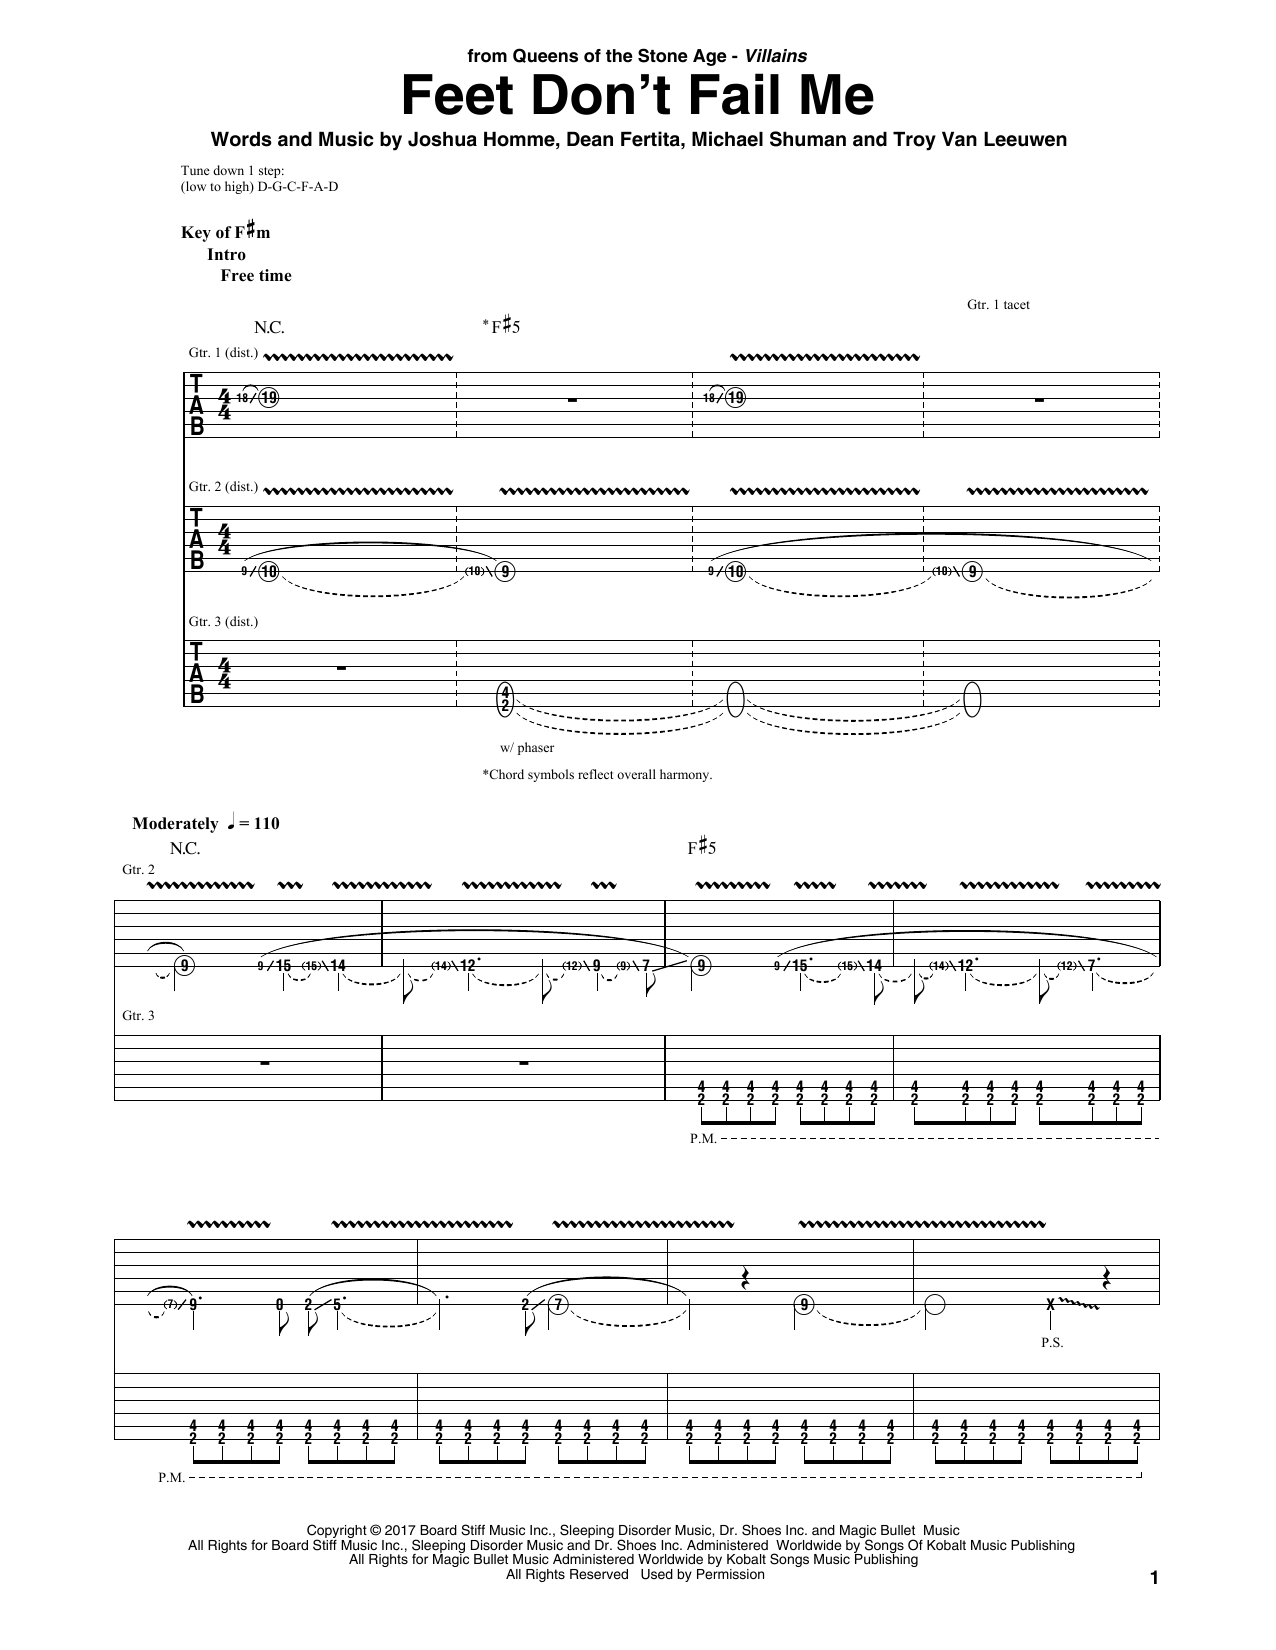 Queens Of The Stone Age Feet Don't Fail Me sheet music notes and chords. Download Printable PDF.